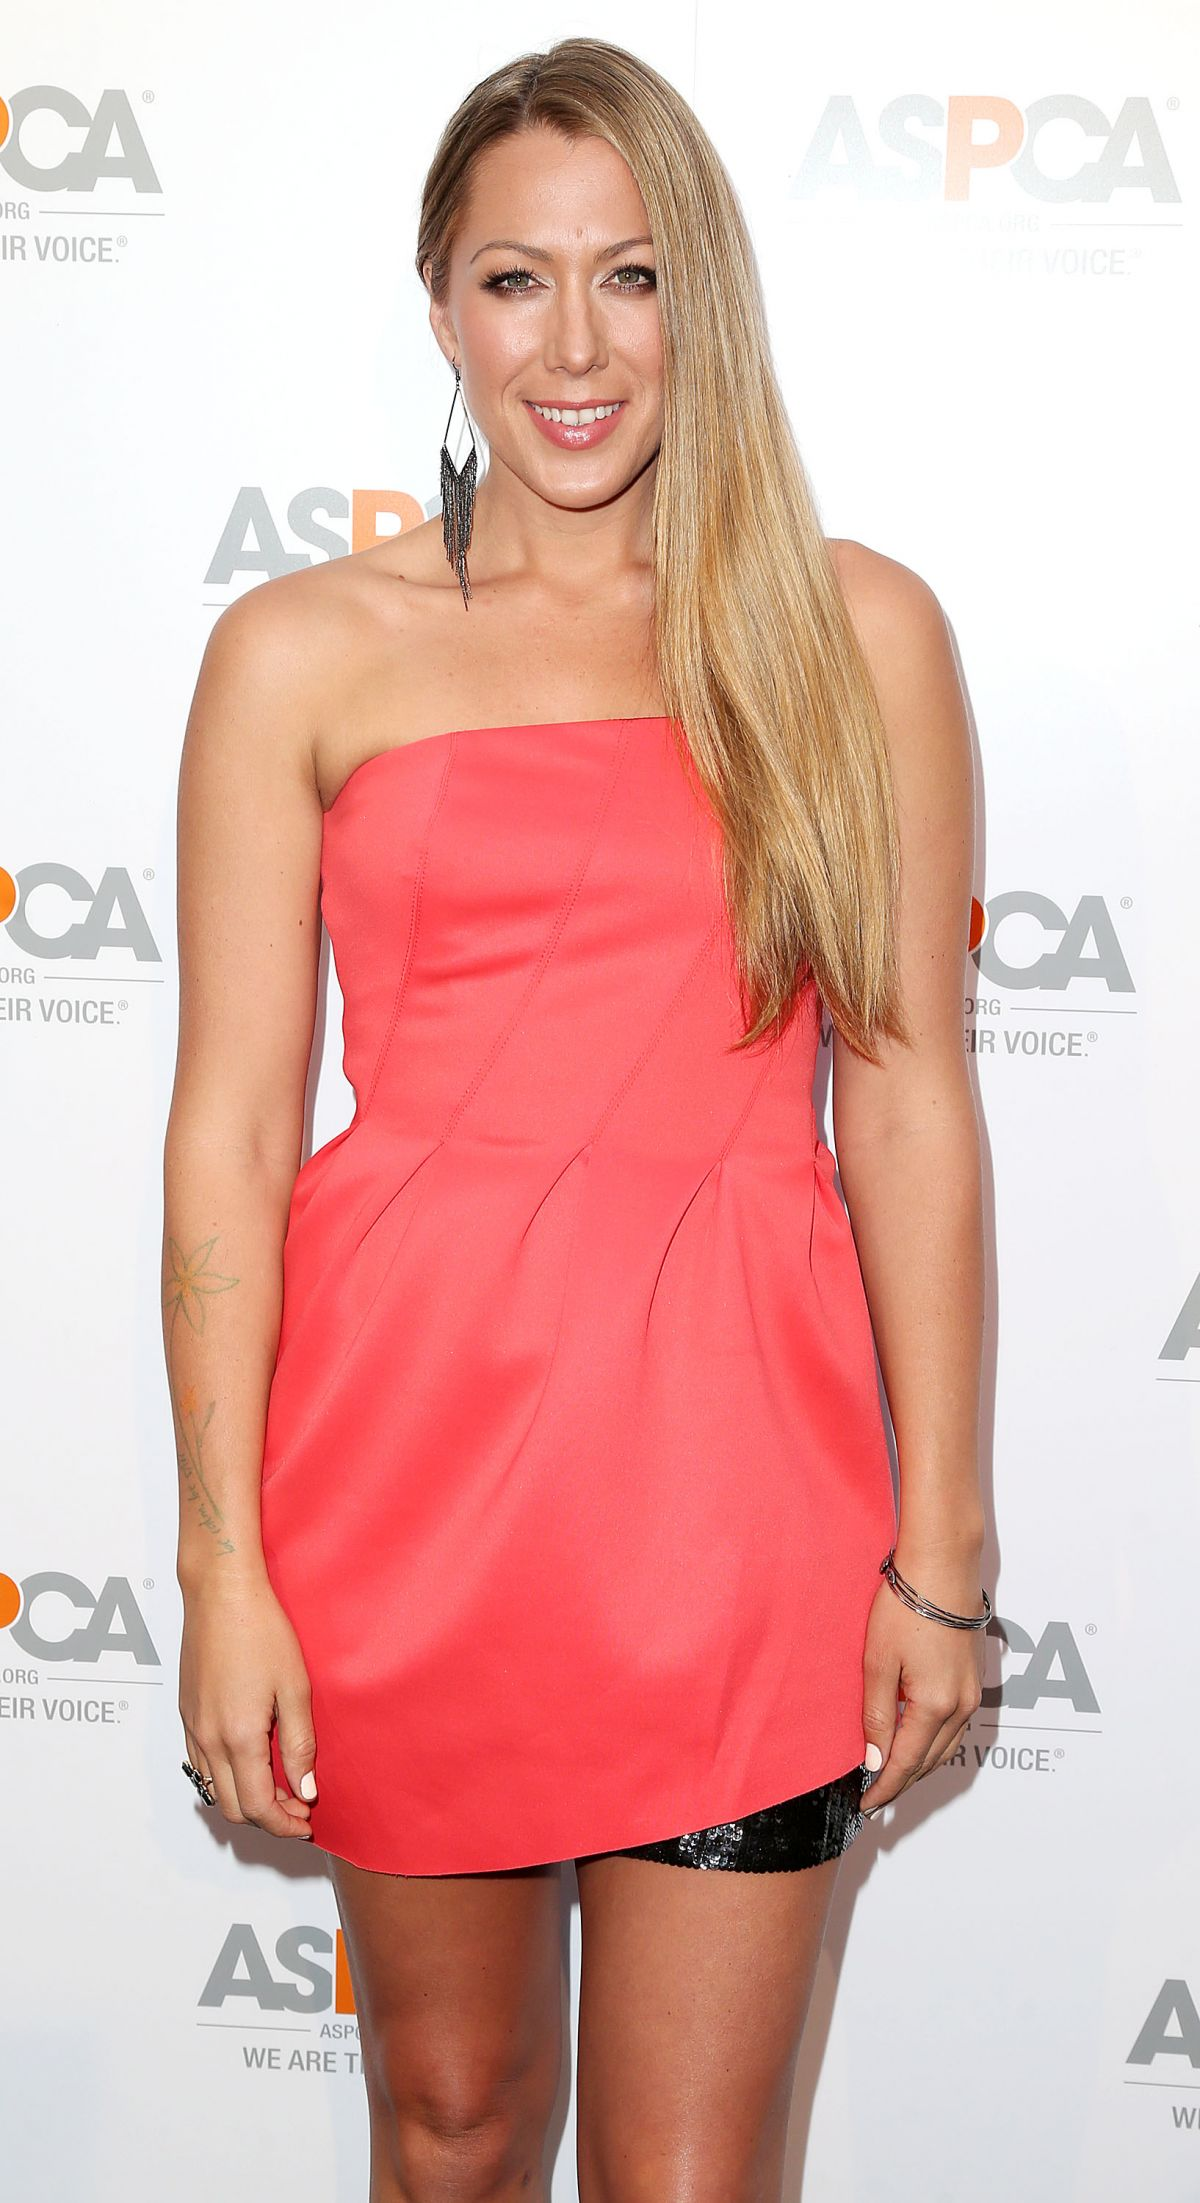 COLBIE CAILLAT at Aspca's Commitment to Save Animals Celebration